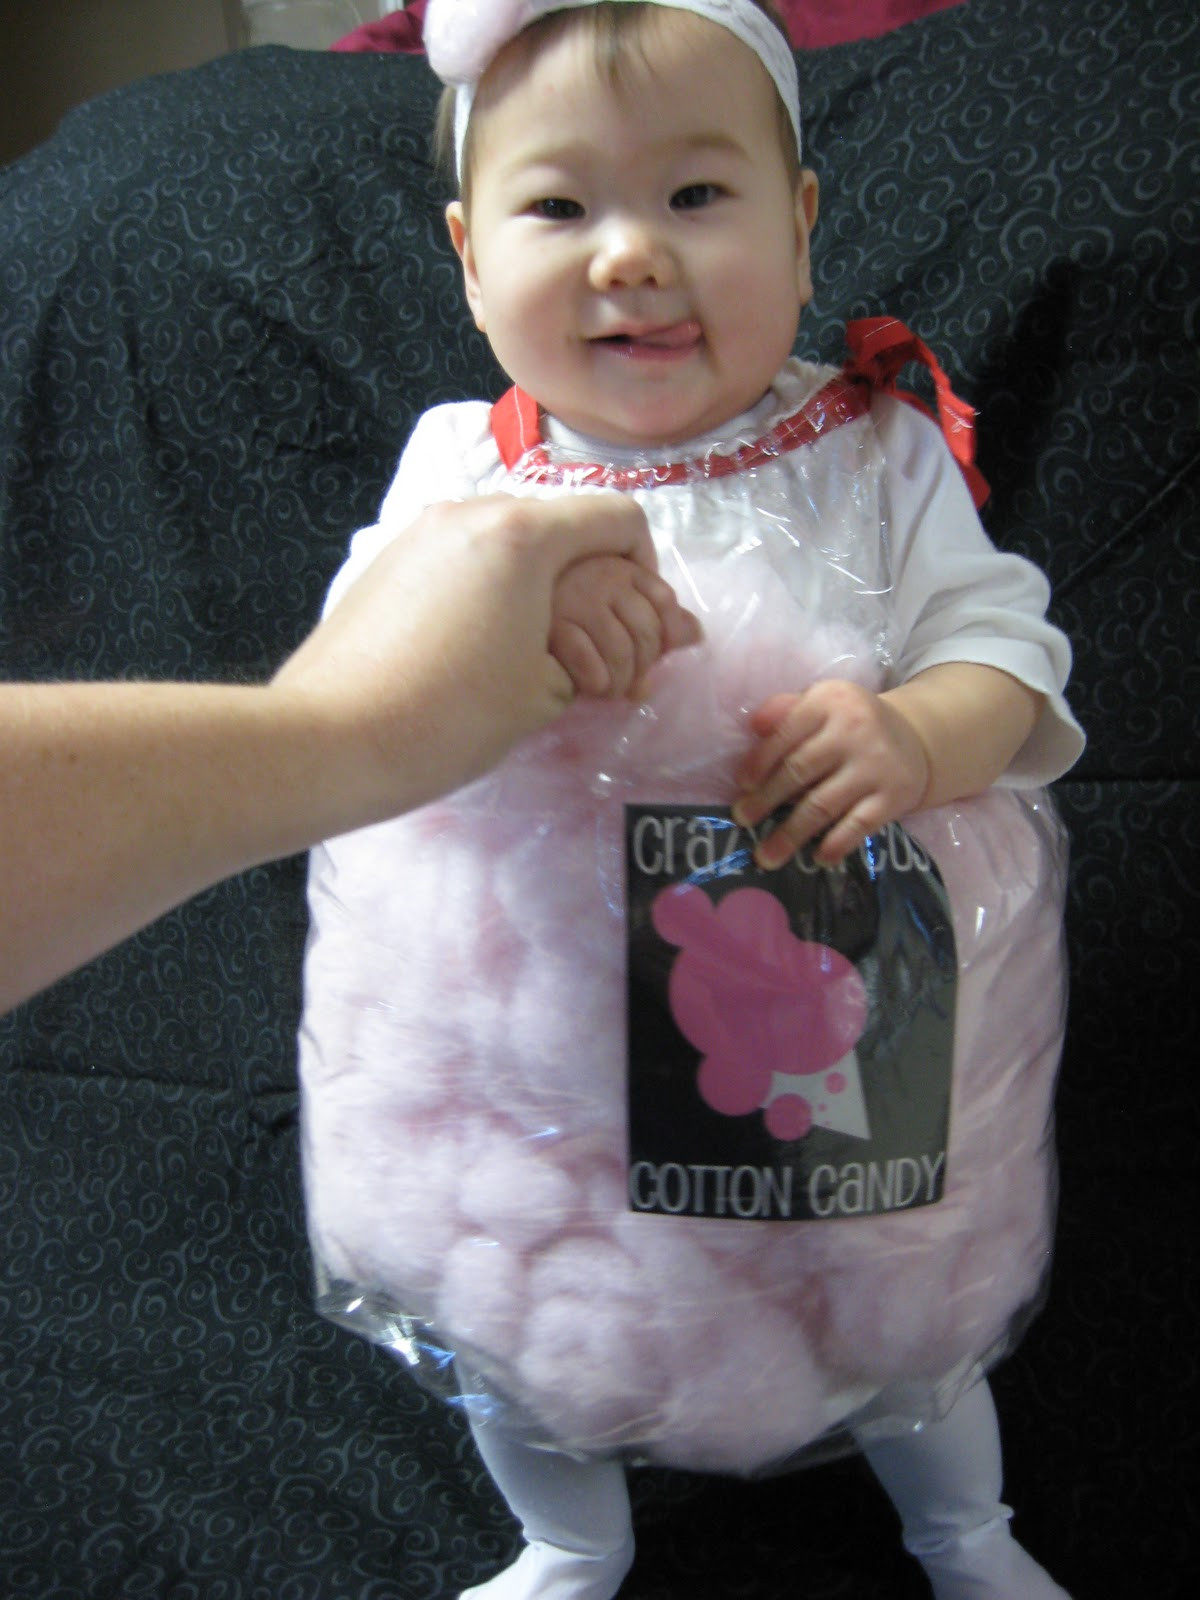 Best ideas about DIY Kids Halloween Costumes . Save or Pin SweeterThanSweets Cutest Handmade DIY Kids Halloween Now.